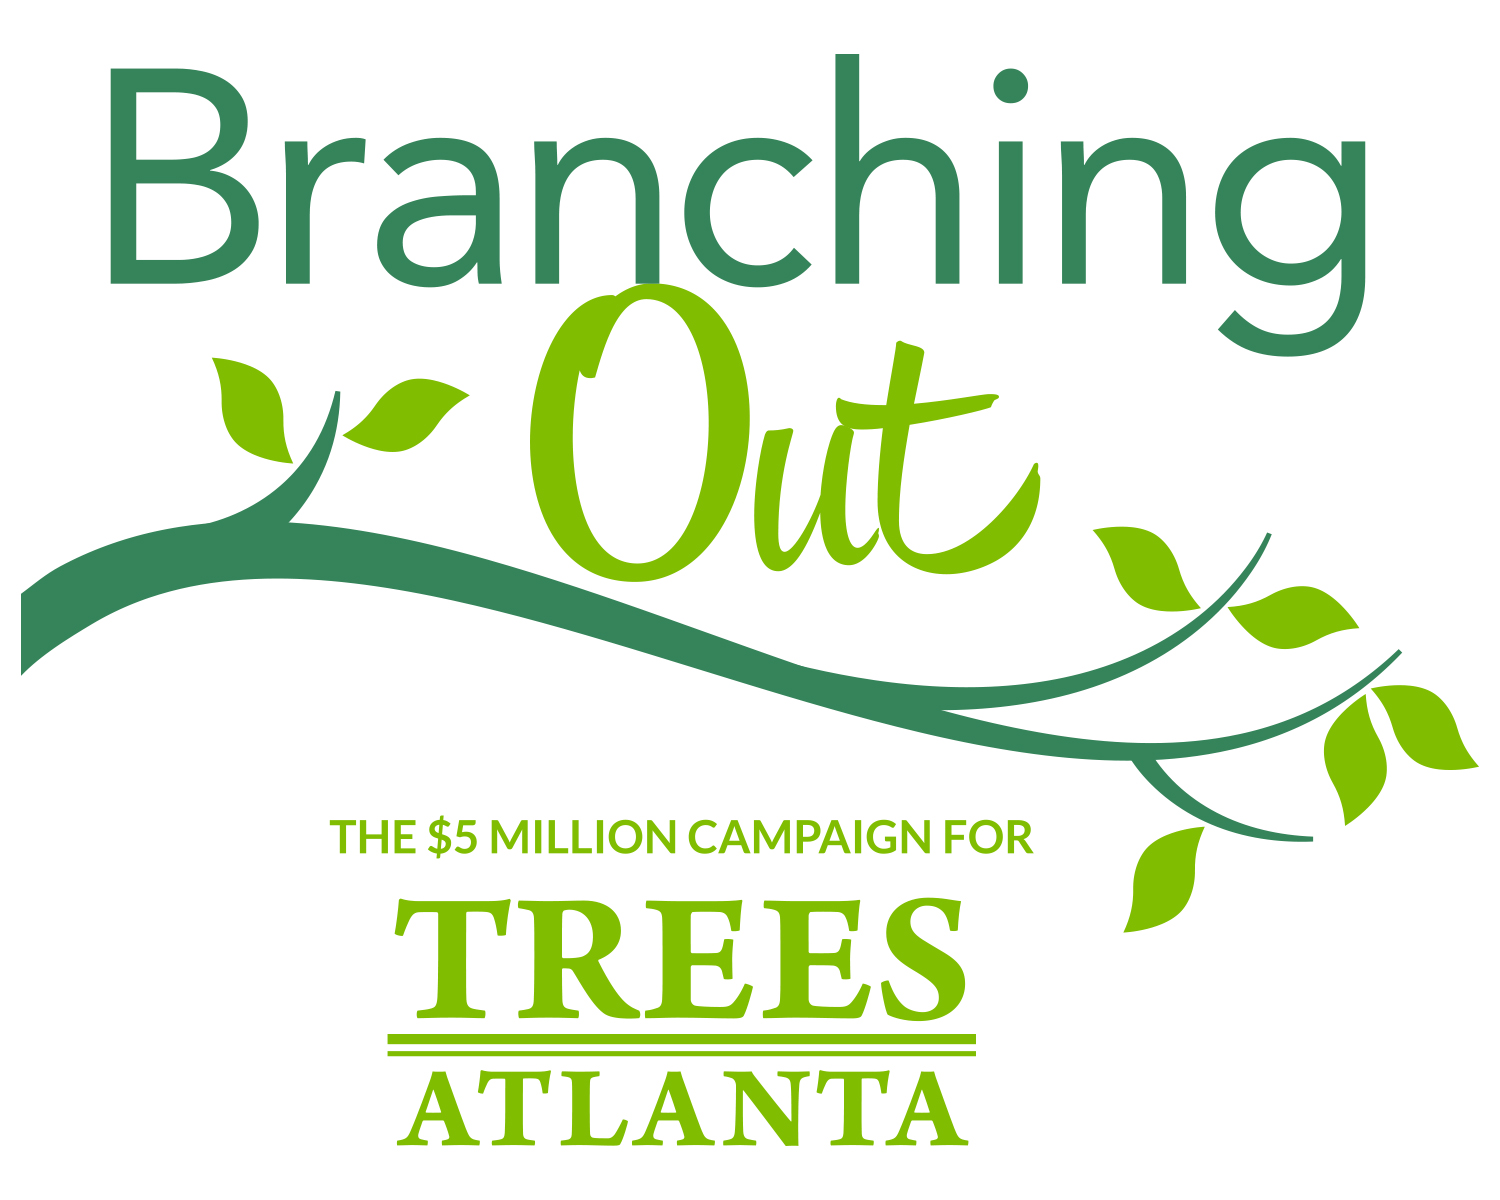 branching-out-campaign-logo